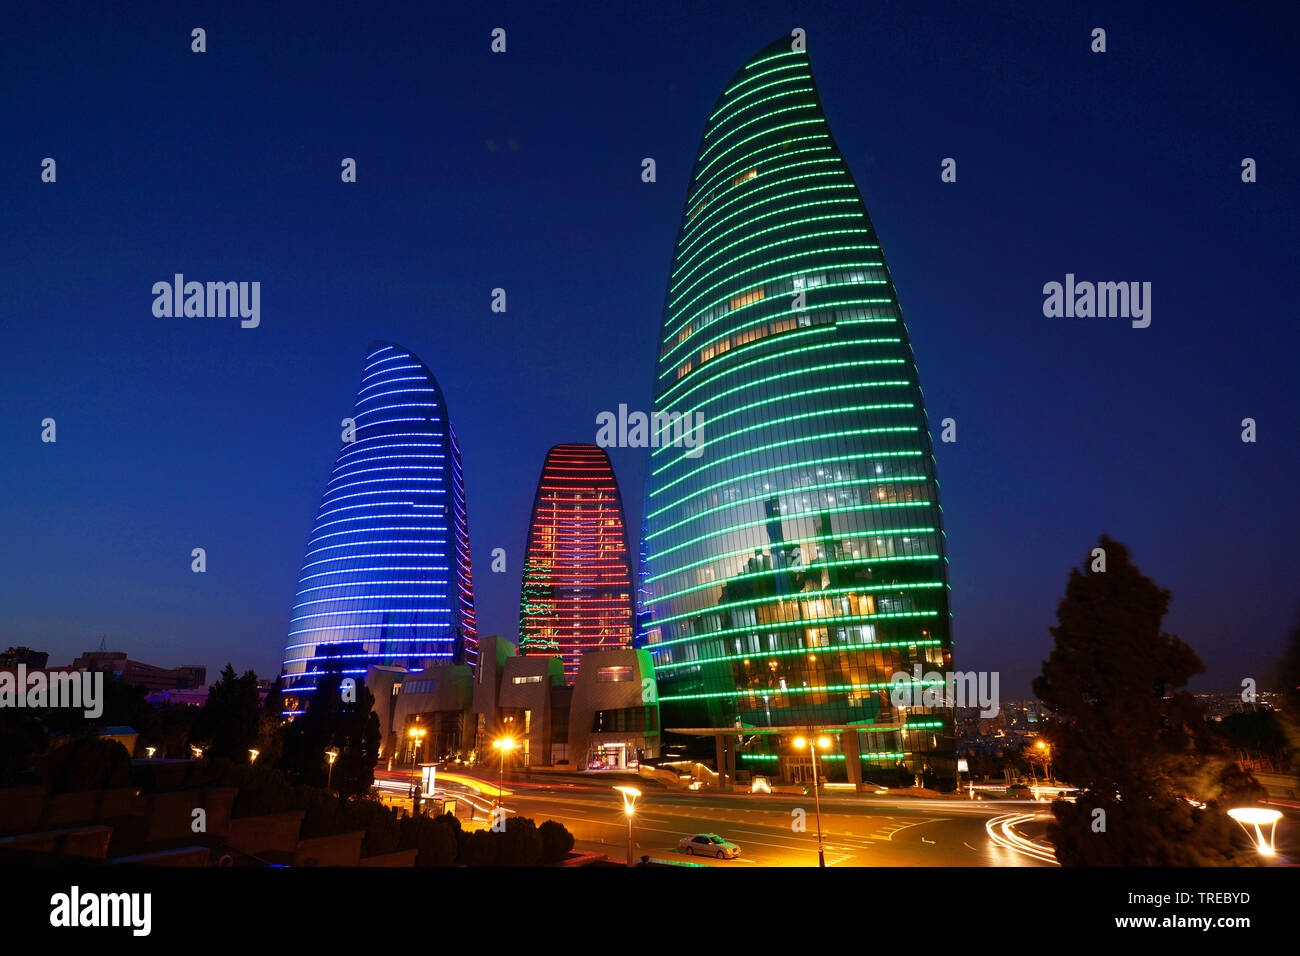 beleuchtete Flame Towers bei Nacht, Aserbaidschan, Baku | illuminated Flame Towers at night, Azerbaijan, Baku | BLWS522475.jpg [ (c) blickwinkel/McPHO - Stock Image